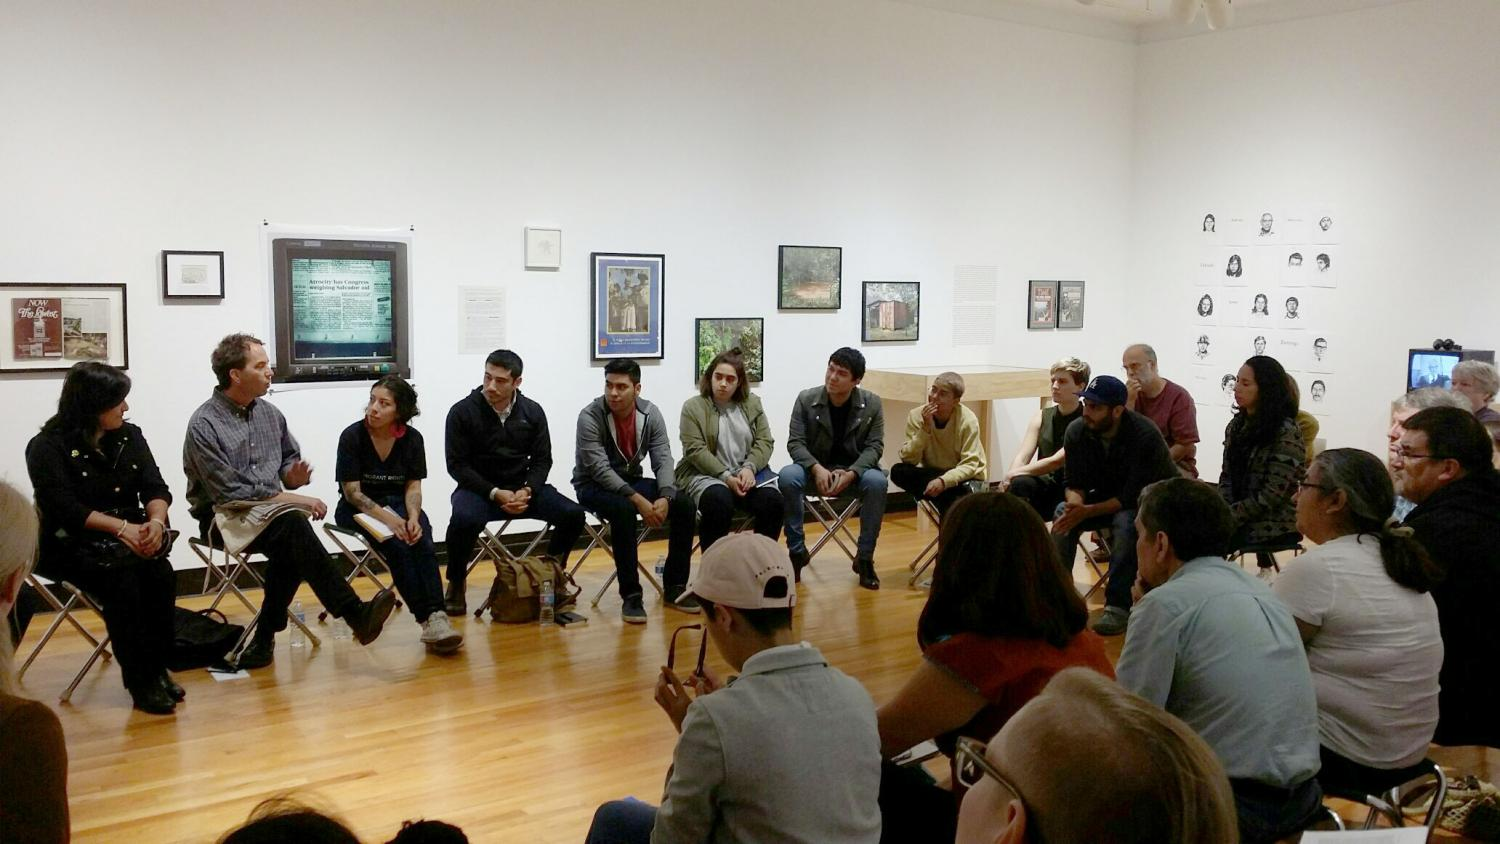 Borderlands: Resisting ICE in the Midwest was organized by Anthropology Leaders as part of their Taboo Talk series, focused on issues of racism, migration, identity and justice.